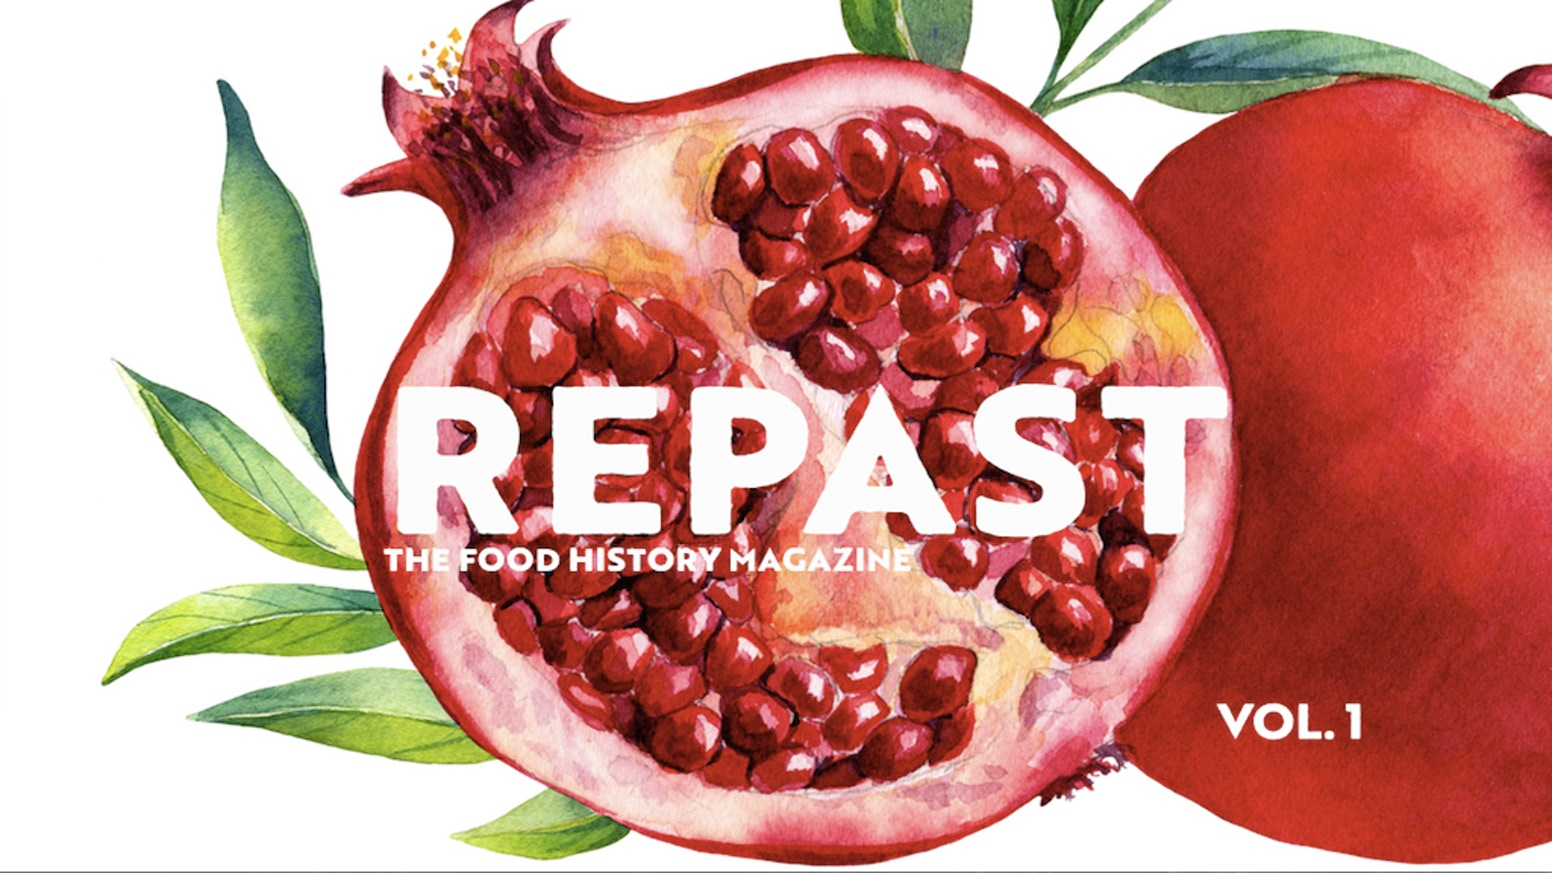 A new magazine celebrating the past and present of what we eat. www.eatenmagazine.com